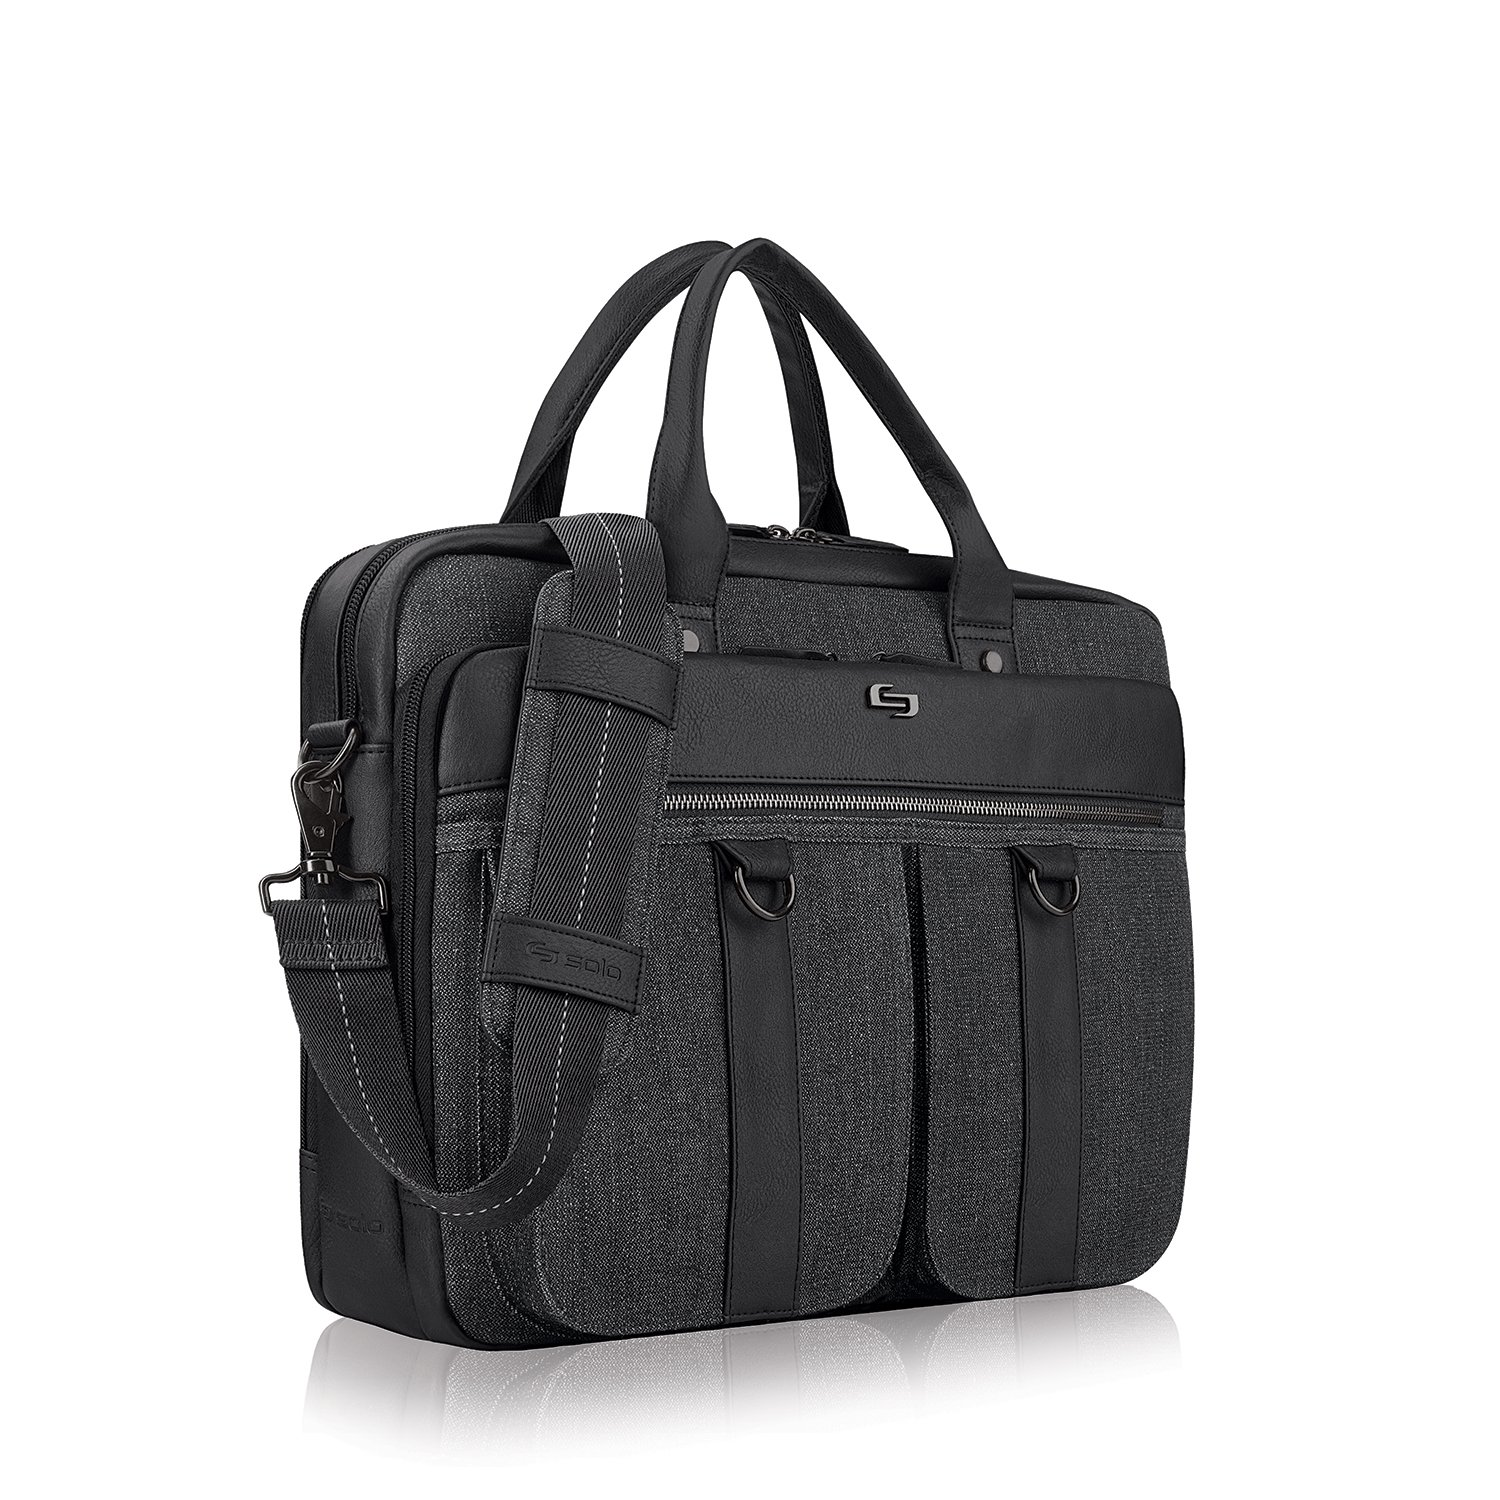 Solo Mercer 15.6 Inch Laptop Briefcase, Black/Grey by SOLO (Image #2)